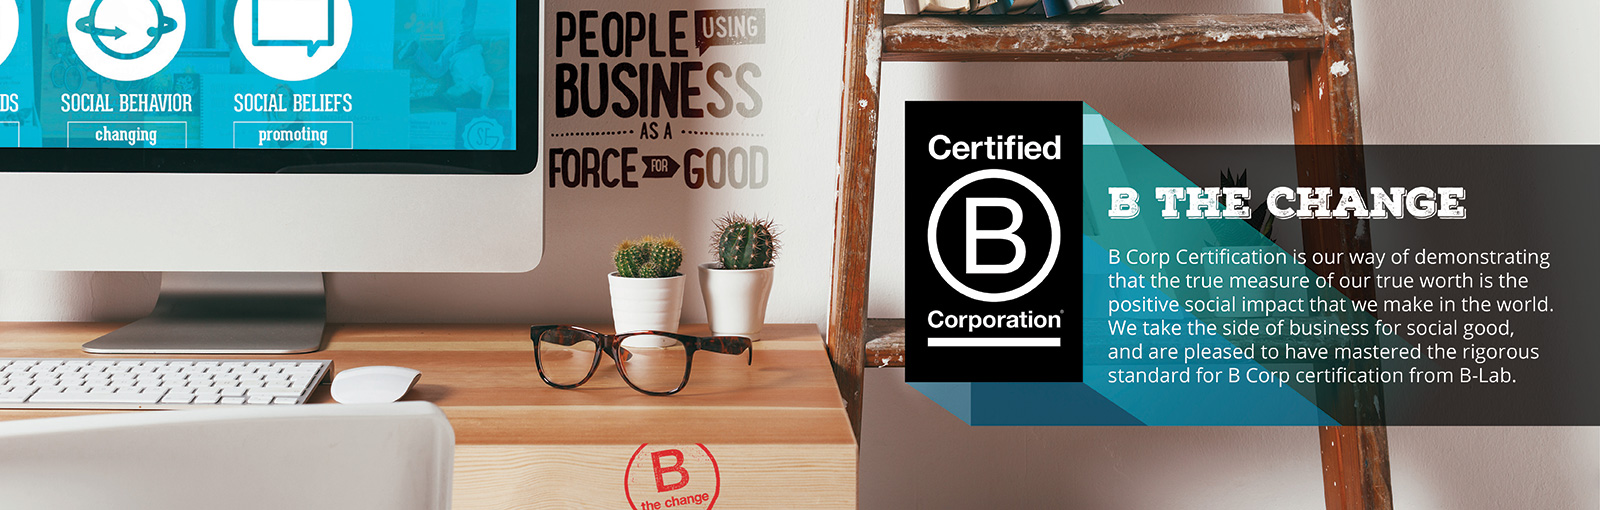 Worldways Social Marketing is now a certified B-Corp!